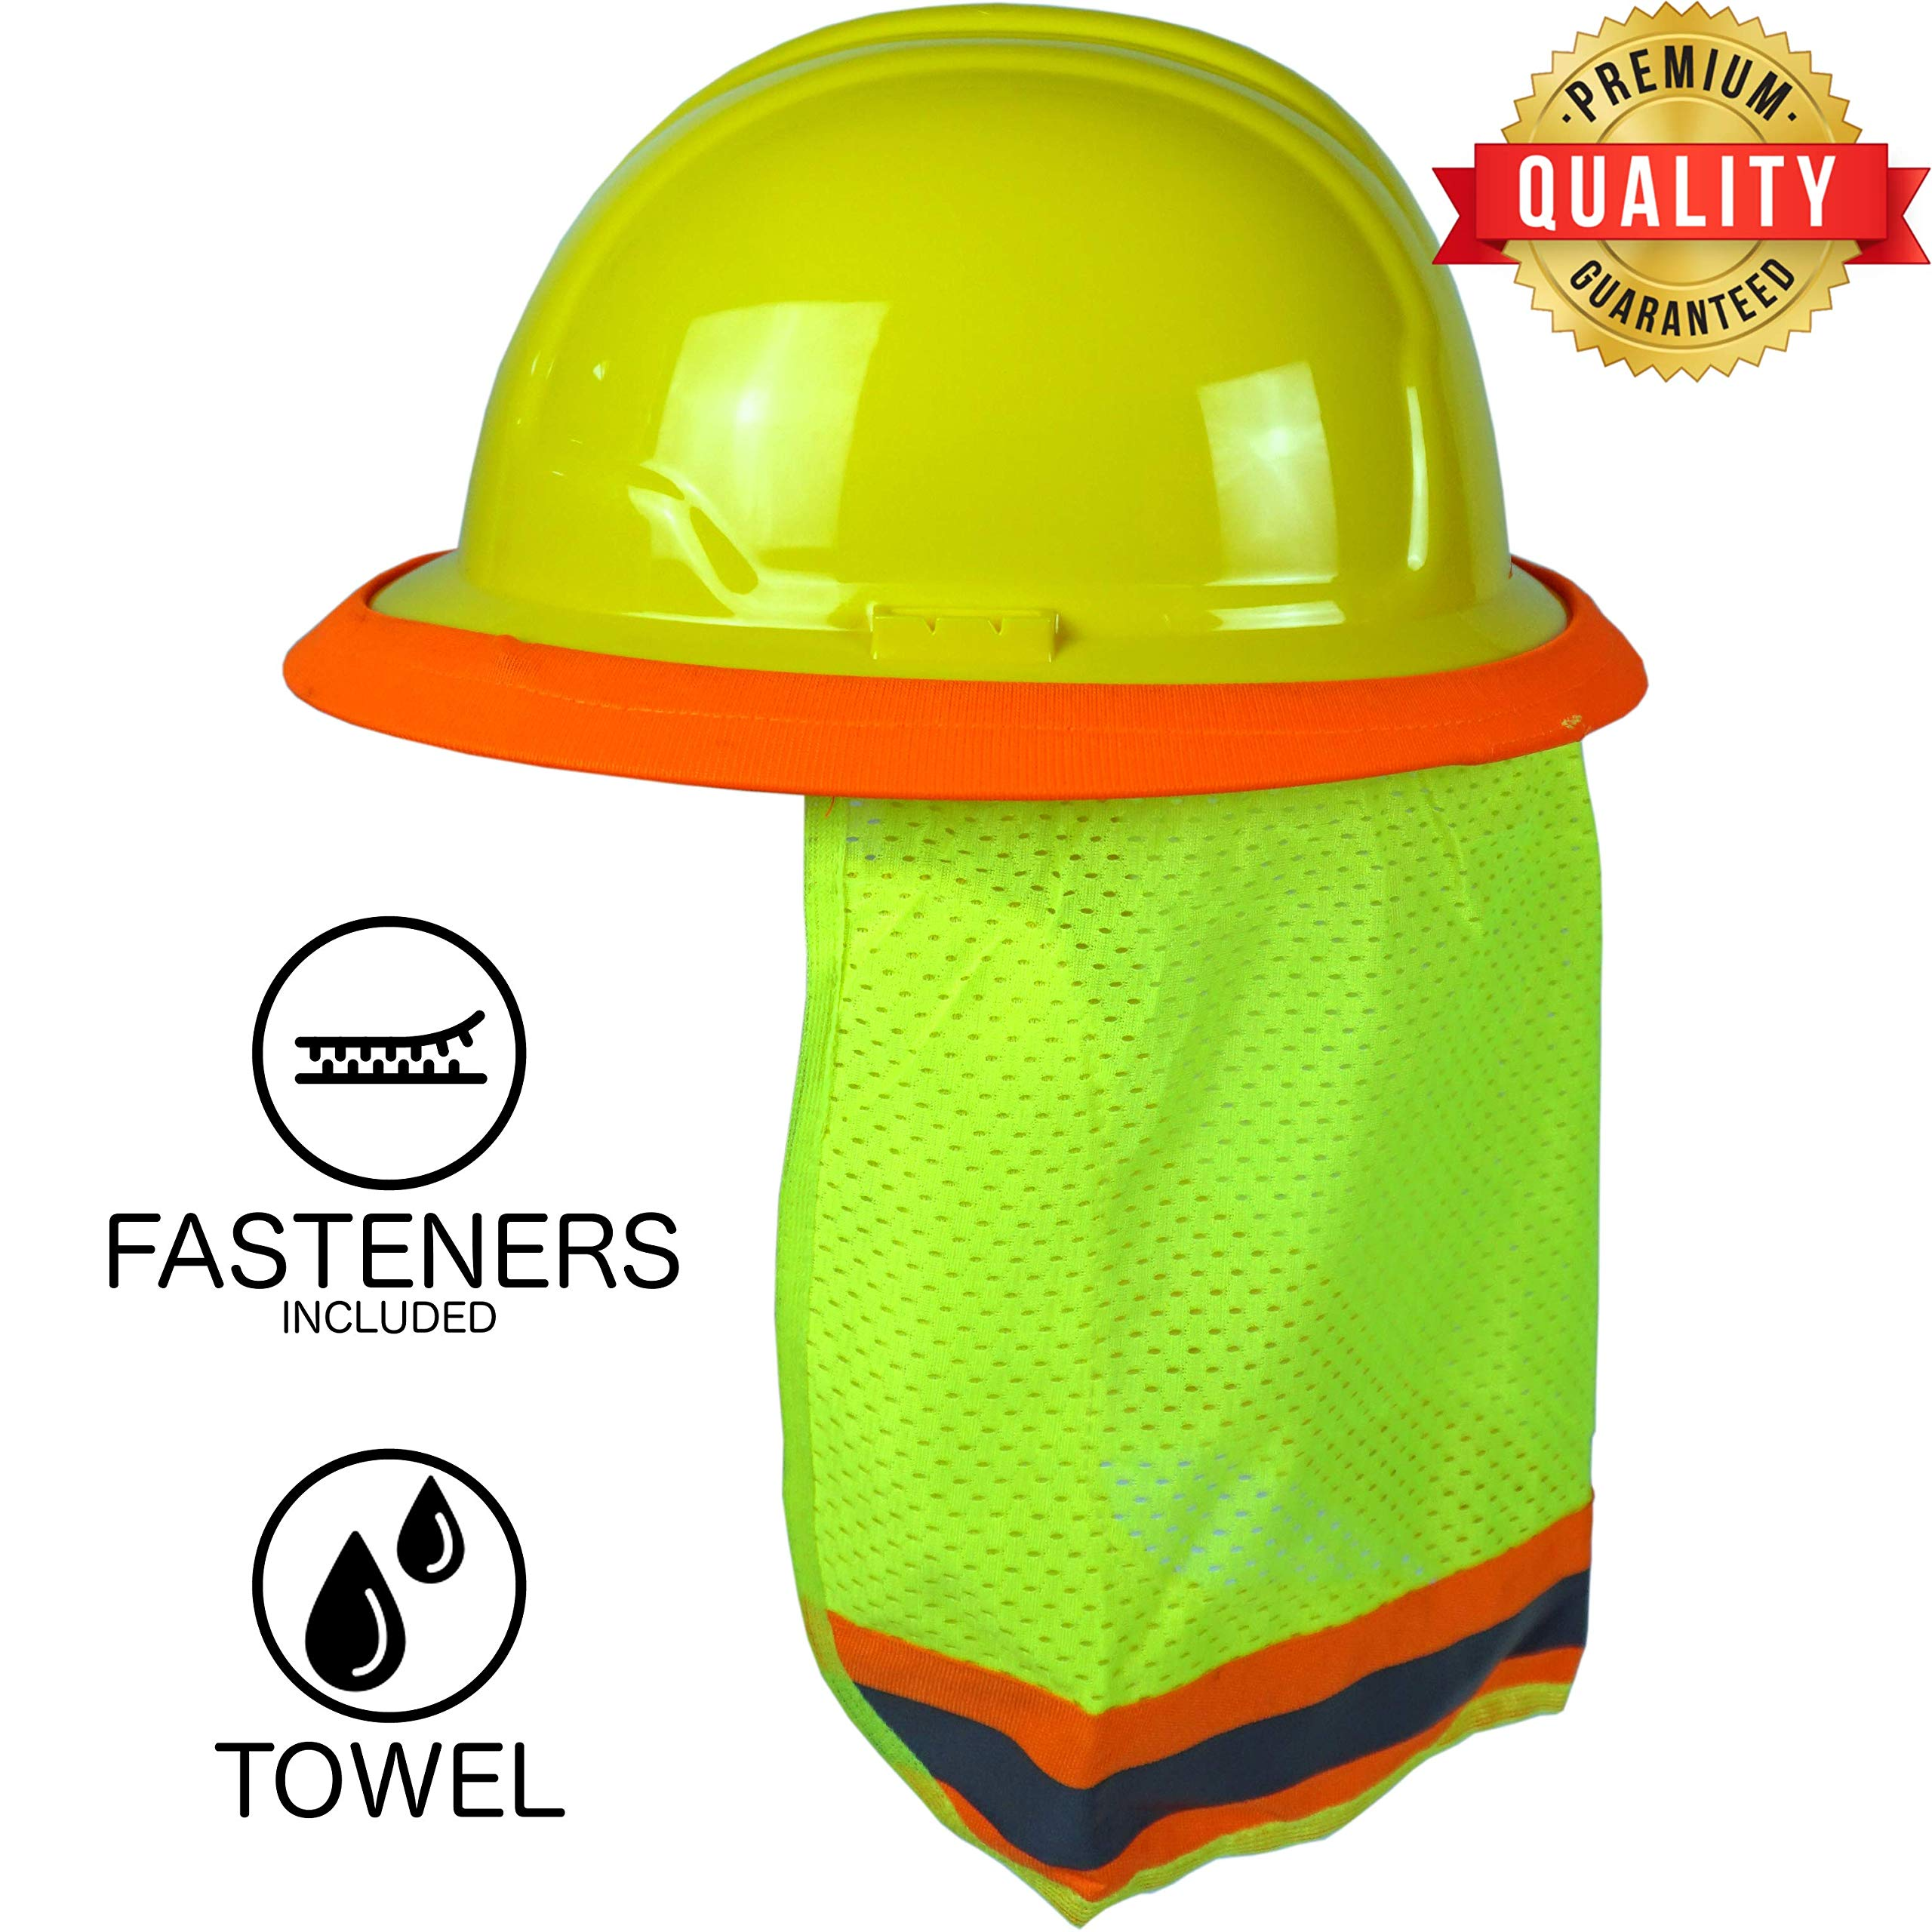 BEST EVER Pro Hard Hat Sun Shade. Premium Neck Shield with Secure-Fit Fasteners & Built In Sweat Towel. Fits Full & Standard Brim Safety Helmets. For Construction & Landscaping. Hard Hat Not Included by BEST EVER Pro